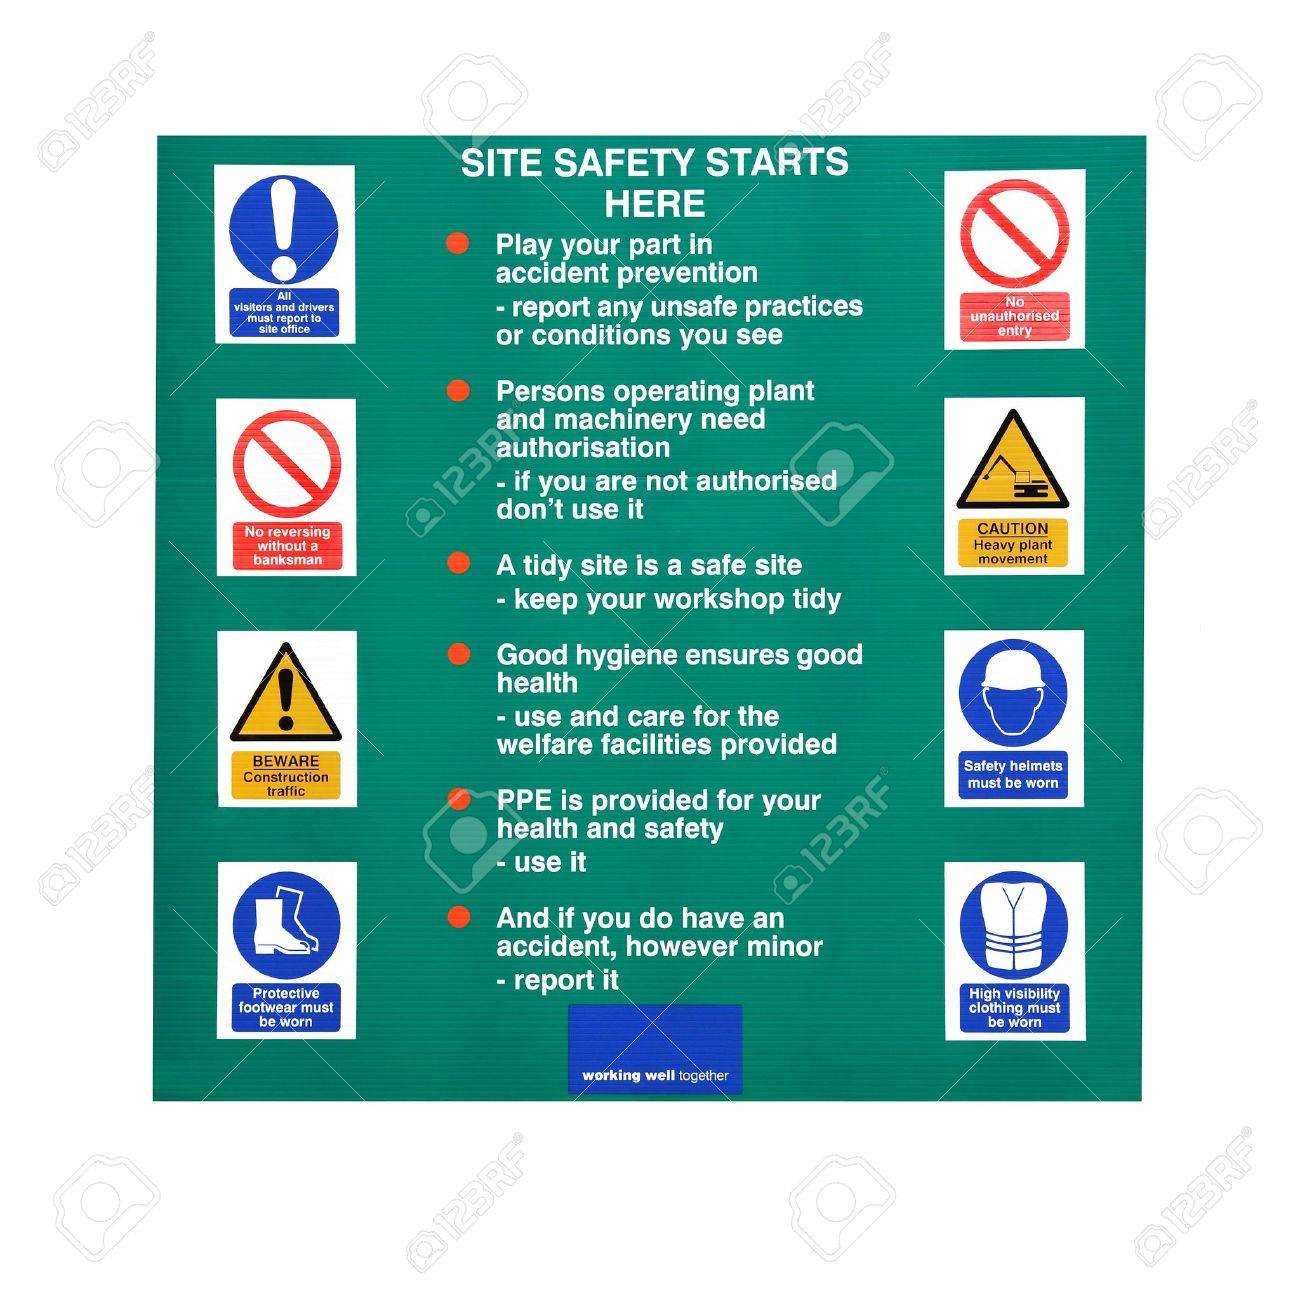 Building construction site sign with safety warnings and symbols building construction site sign with safety warnings and symbols over white stock photo buycottarizona Images